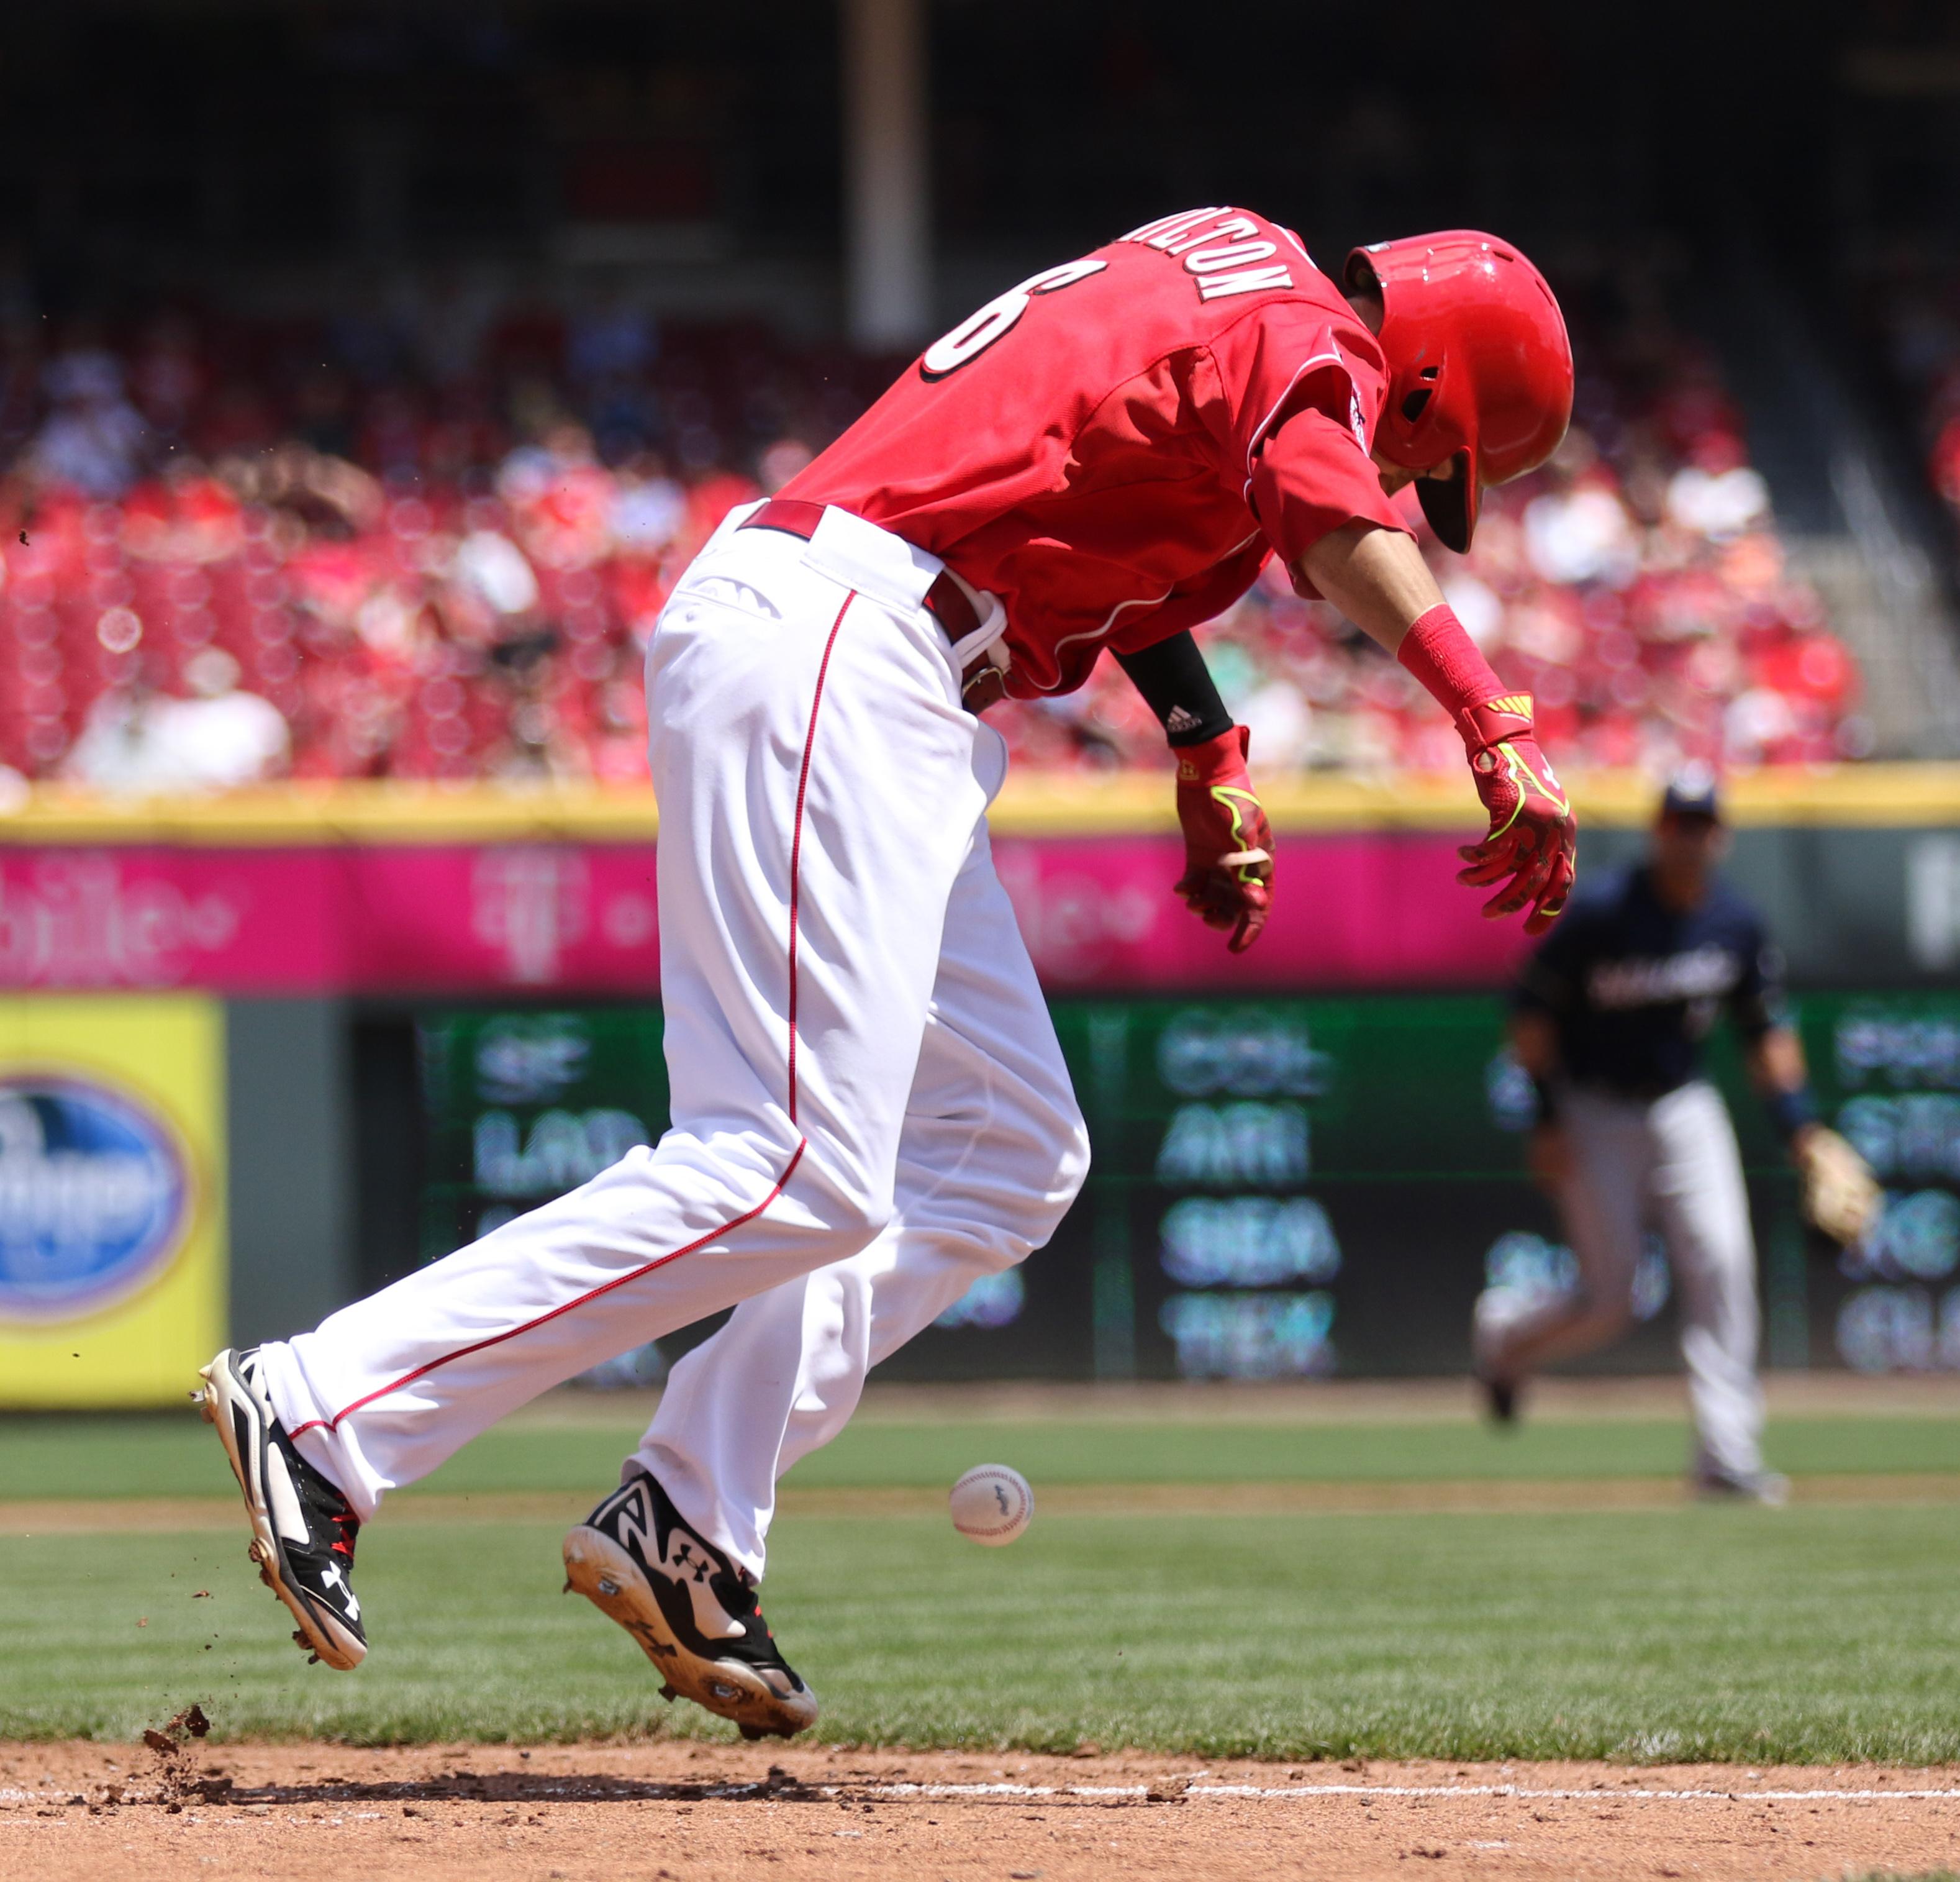 Cincinnati Reds'  Billy Hamilton (6) leaps over the baseball, a foul ball off his bat, as he runs towards first base during the fifth inning of their baseball game against the Milwaukee Brewers played Wednesday, April 29, 2015 in Cincinnati. (AP Photo/Gar